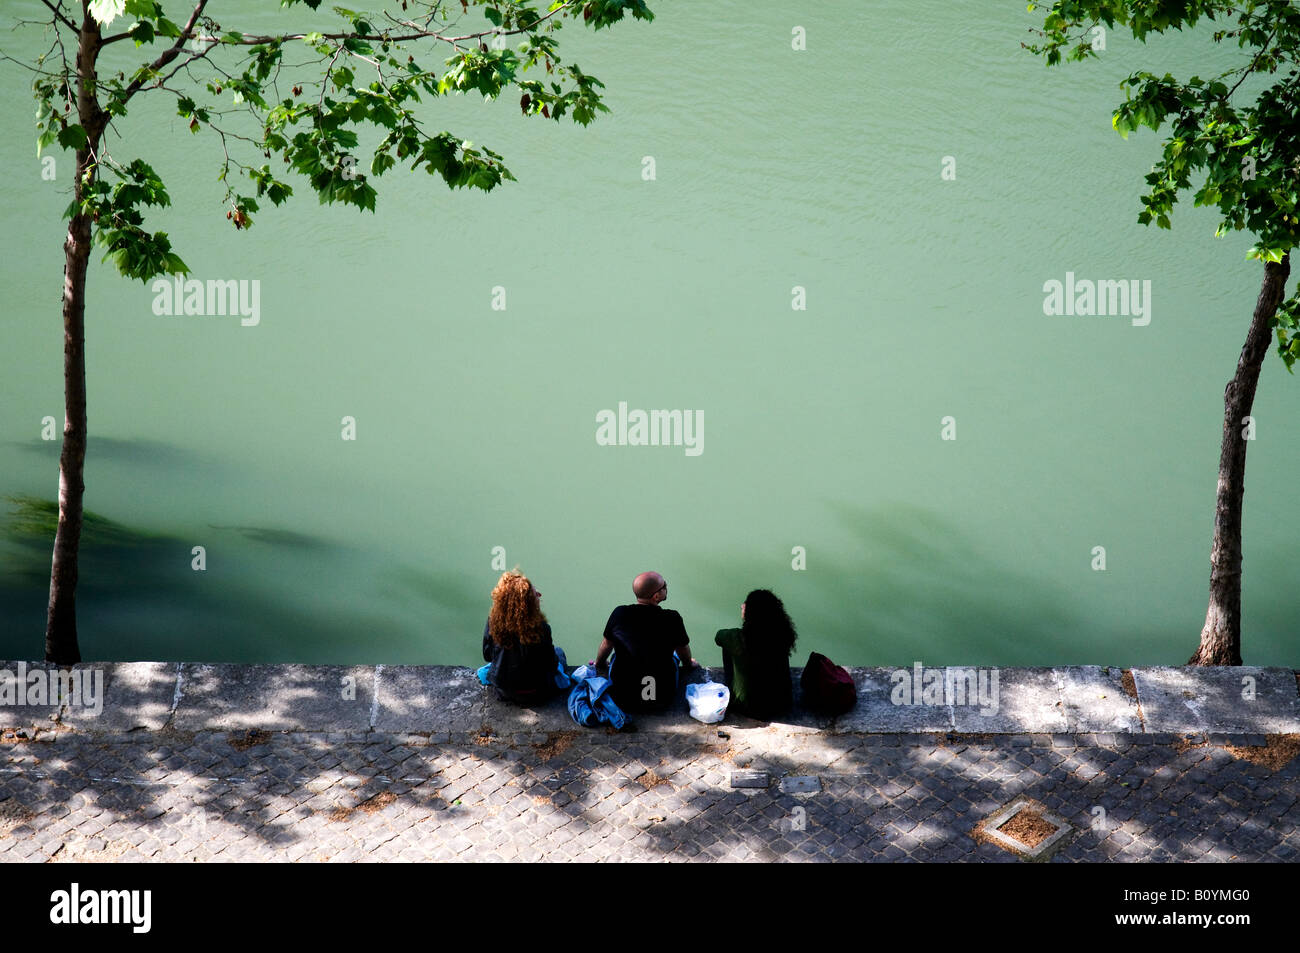 Tourists sitting on the bank of the Tiber river in Rome, Italy - Stock Image